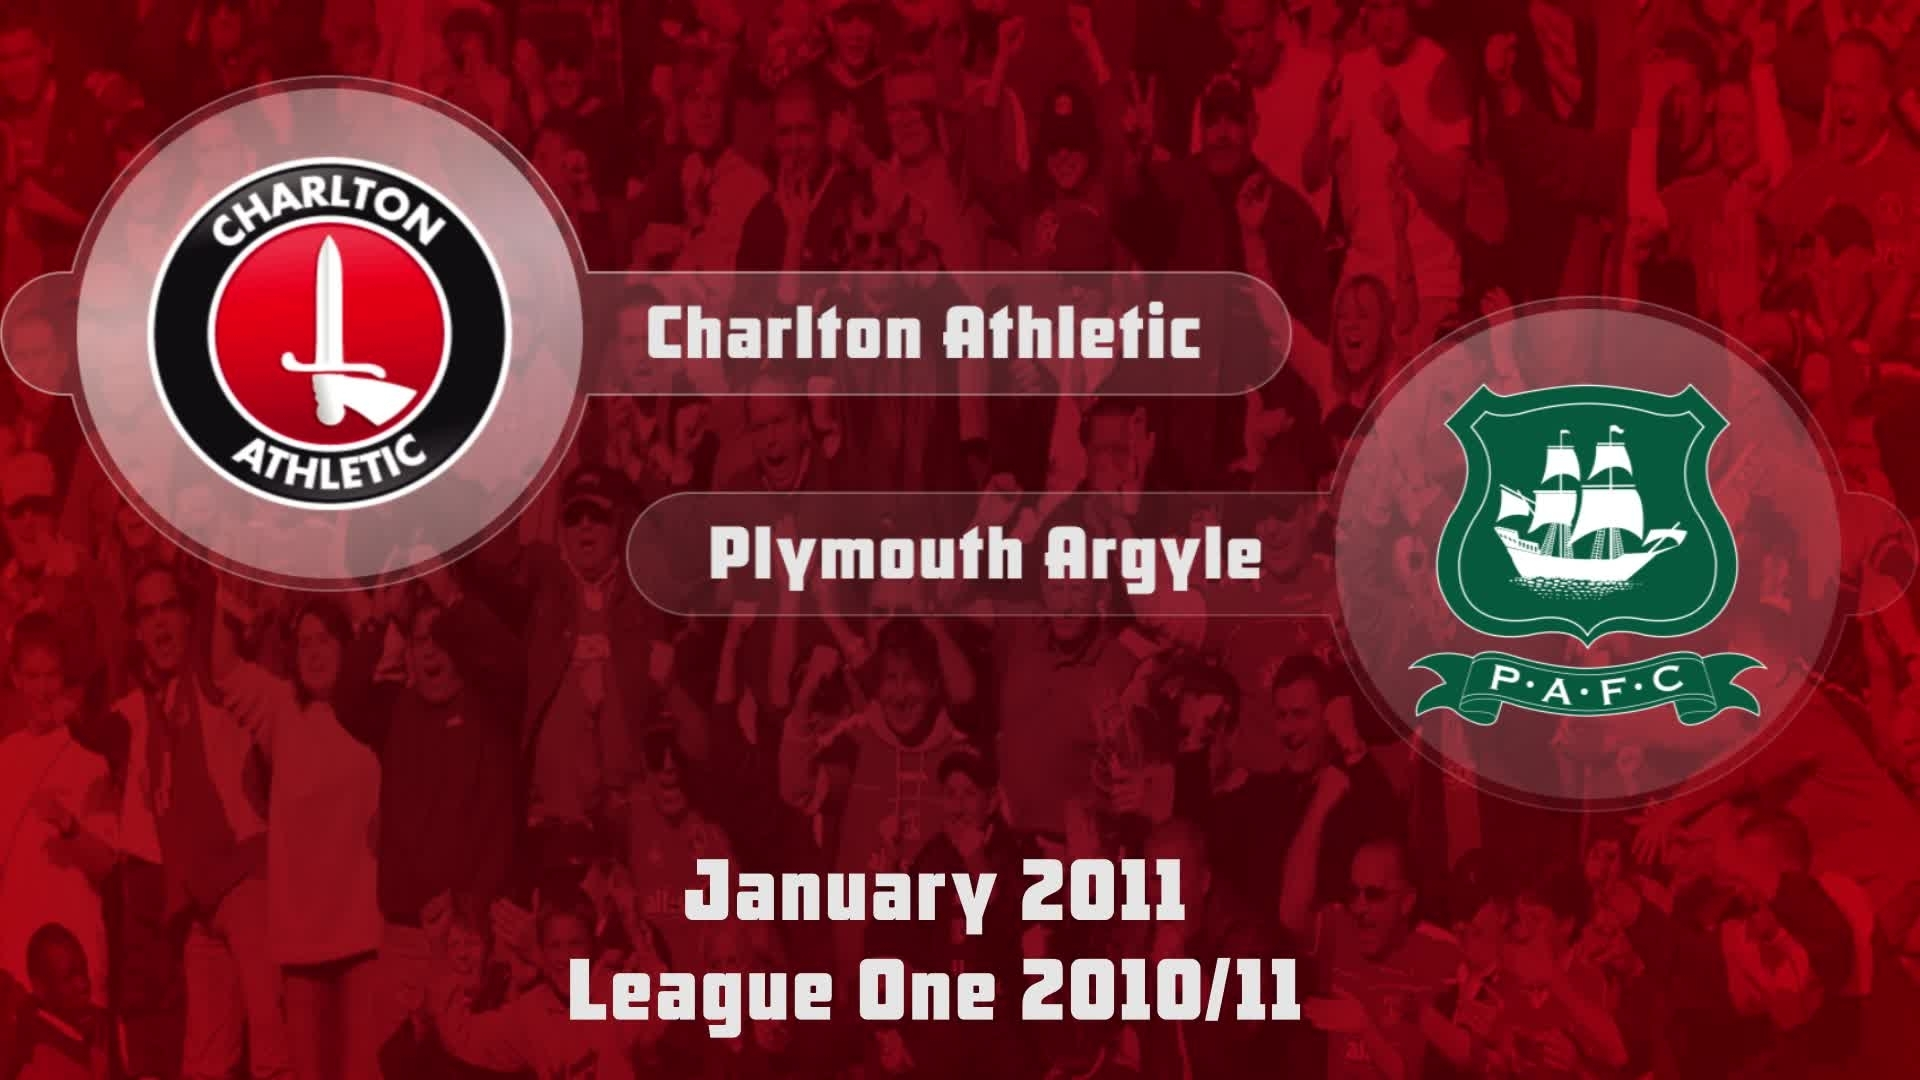 34 HIGHLIGHTS | Charlton 2 Plymouth 0 (Jan 2011)